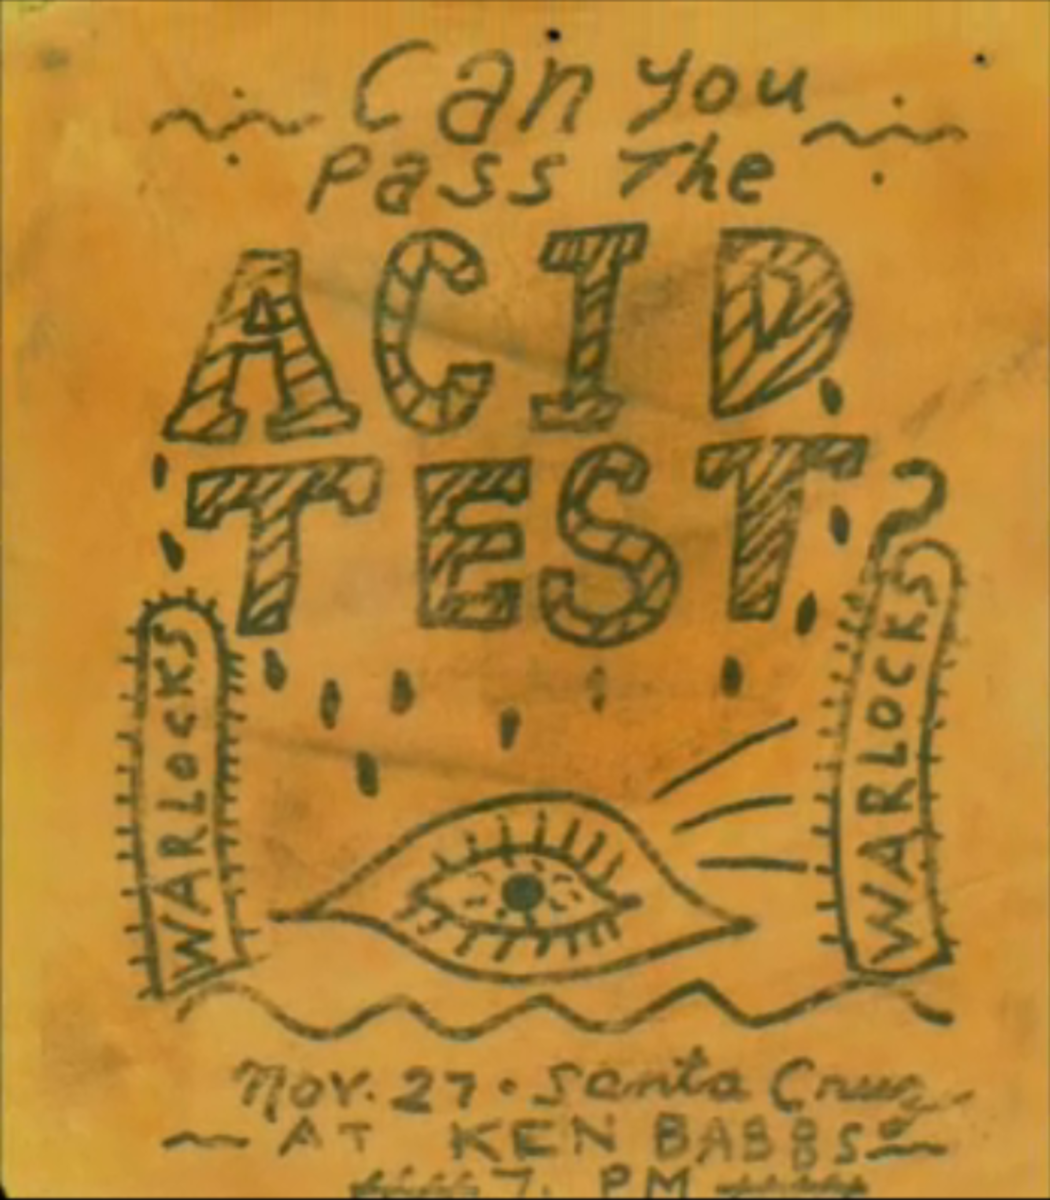 The Acid Test Concert Posters & Handbills